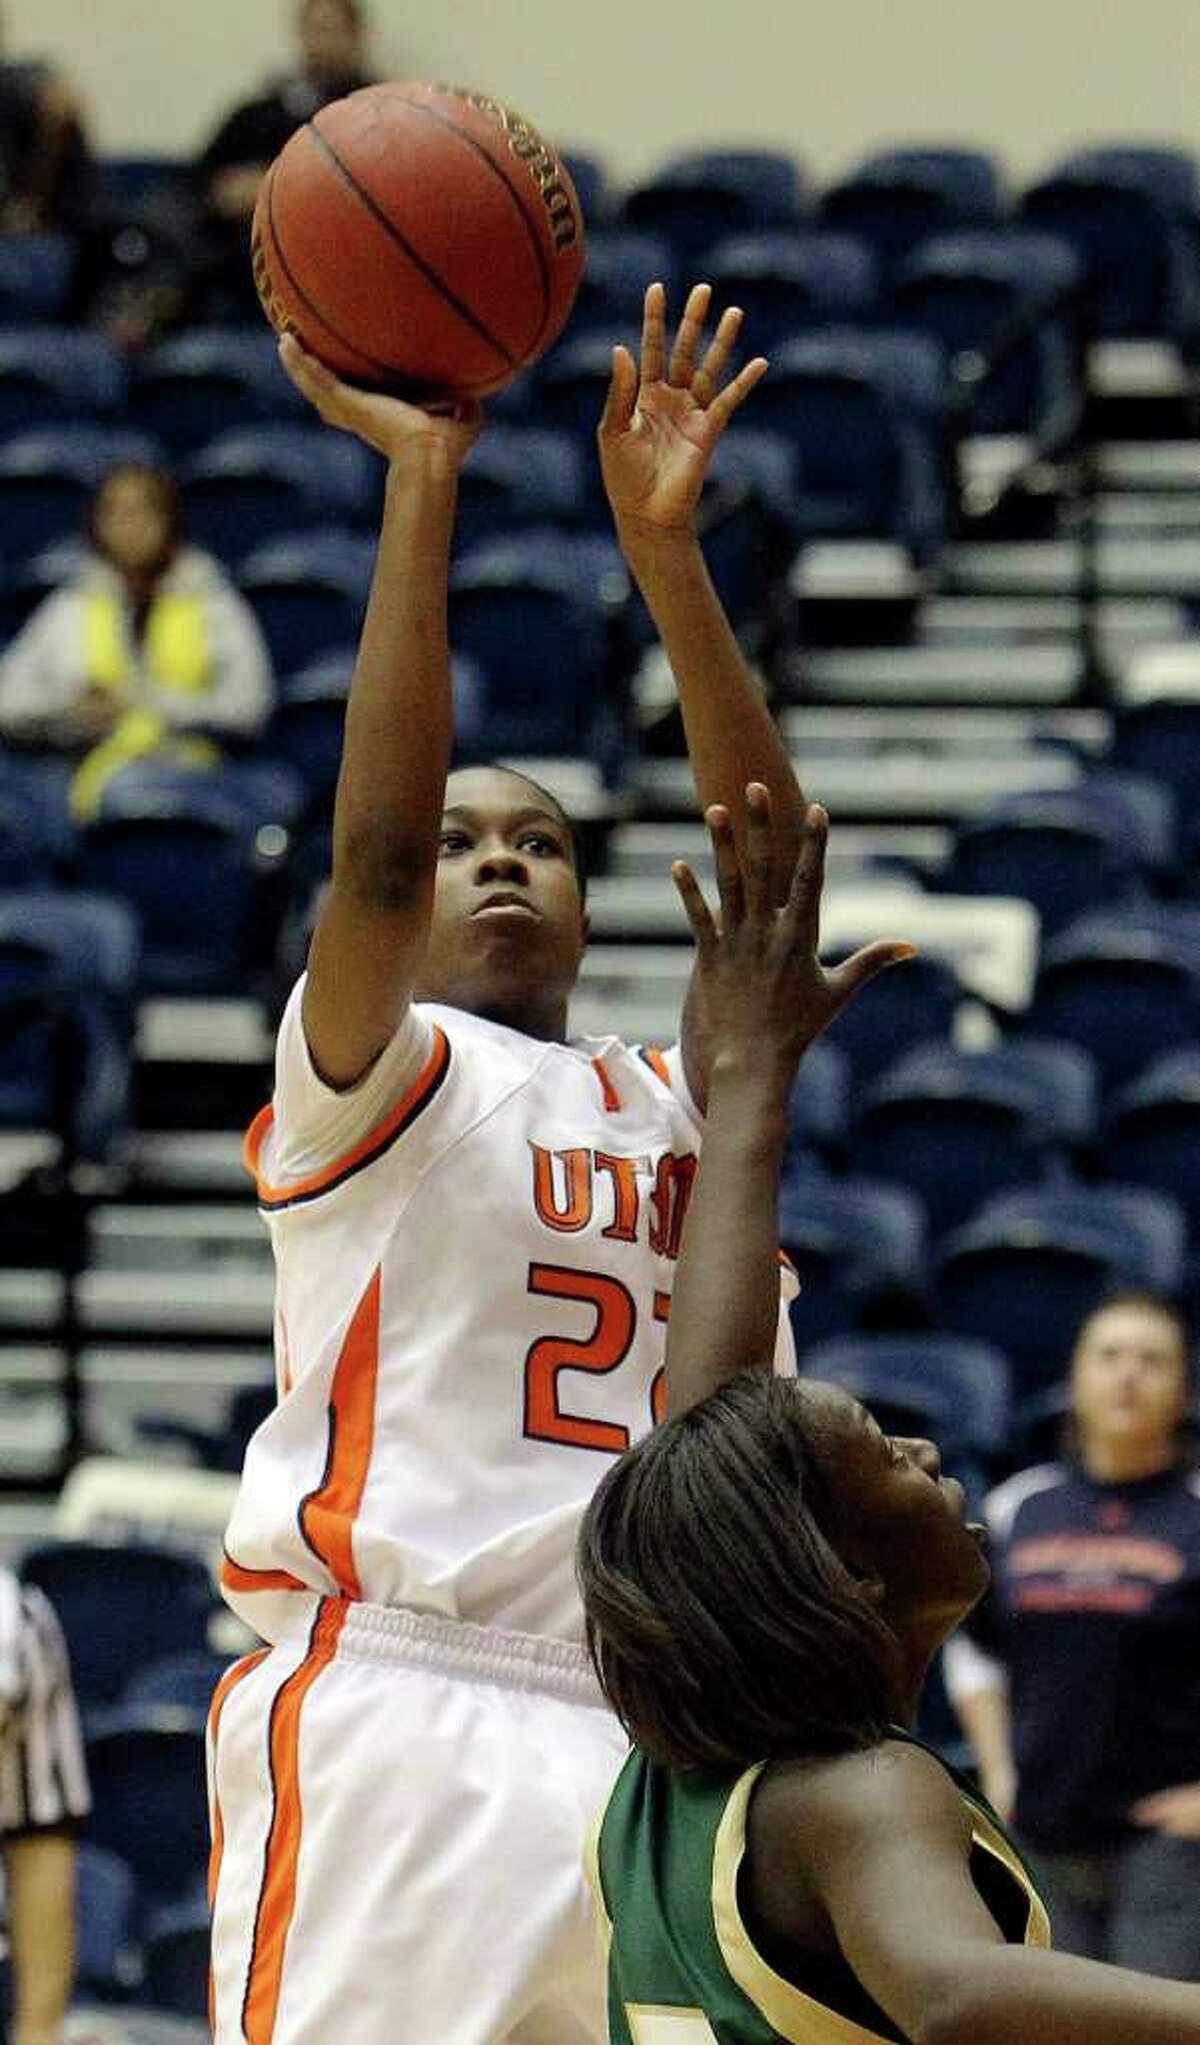 UTSA Lady Roadrunners' Ashley Gardner (22) shoots over Southeastern Louisiana's Rashima Jenkins (15) on Wednesday, Feb. 9, 2011. Kin Man Hui/kmhui@express-news.net